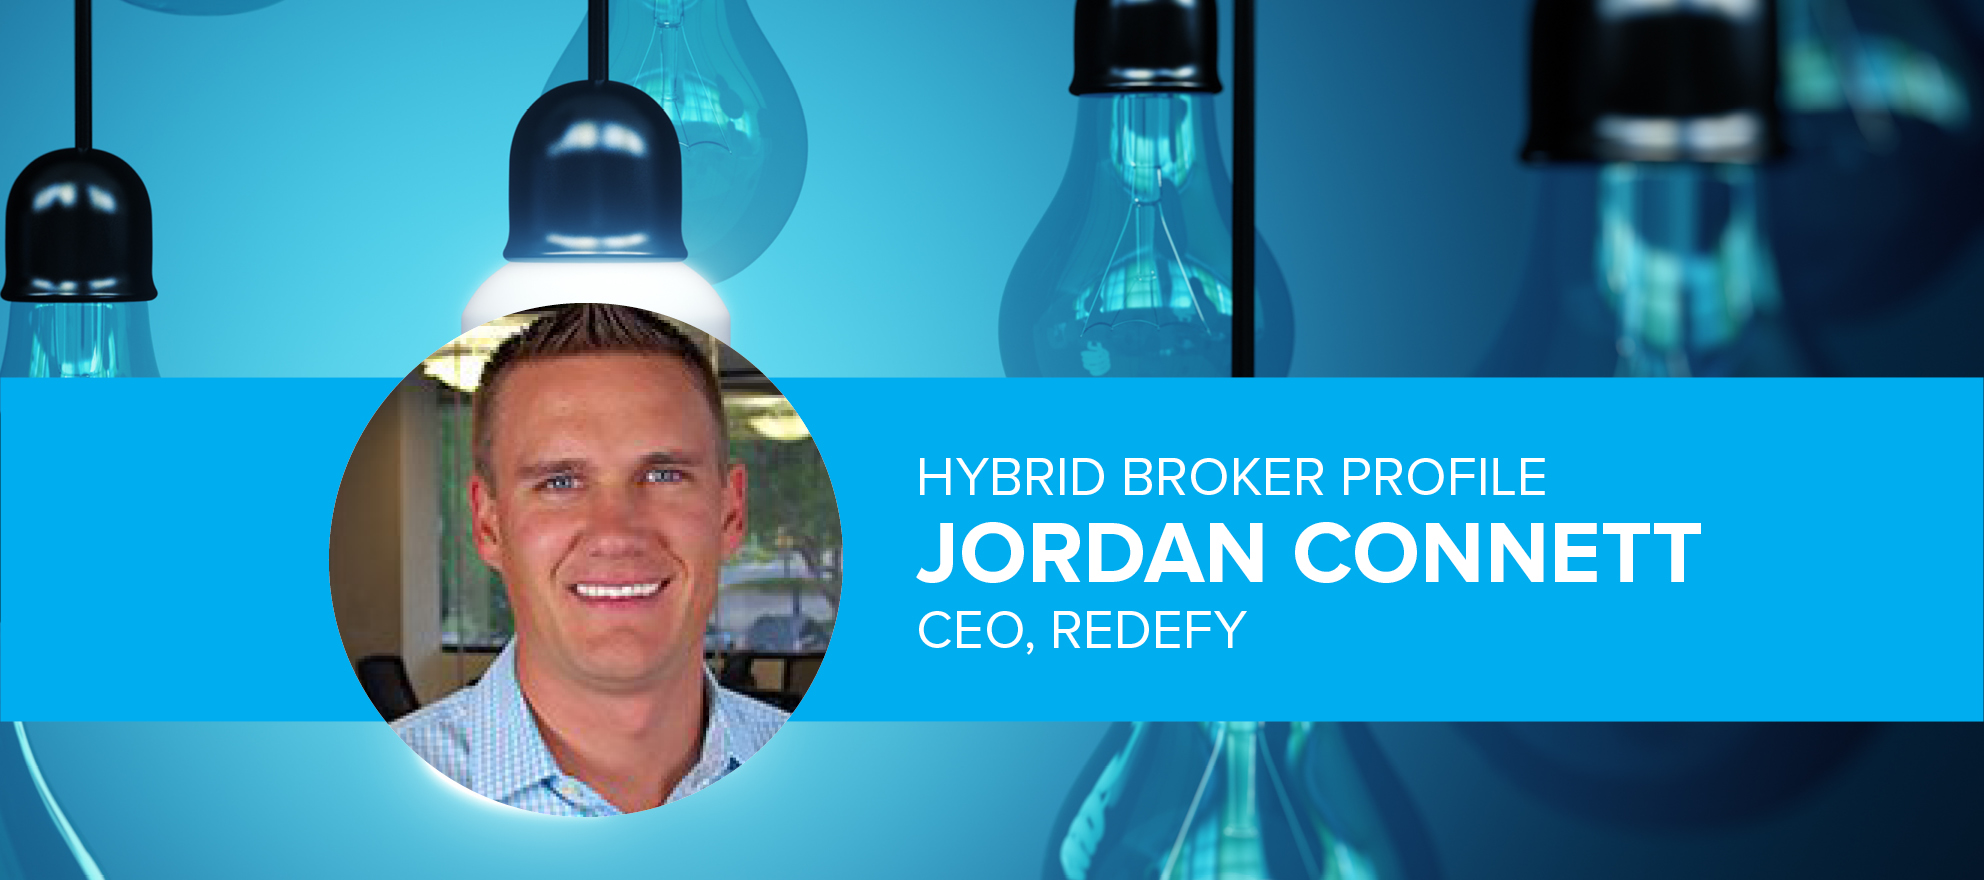 Redefy targets sellers with a discount broker model